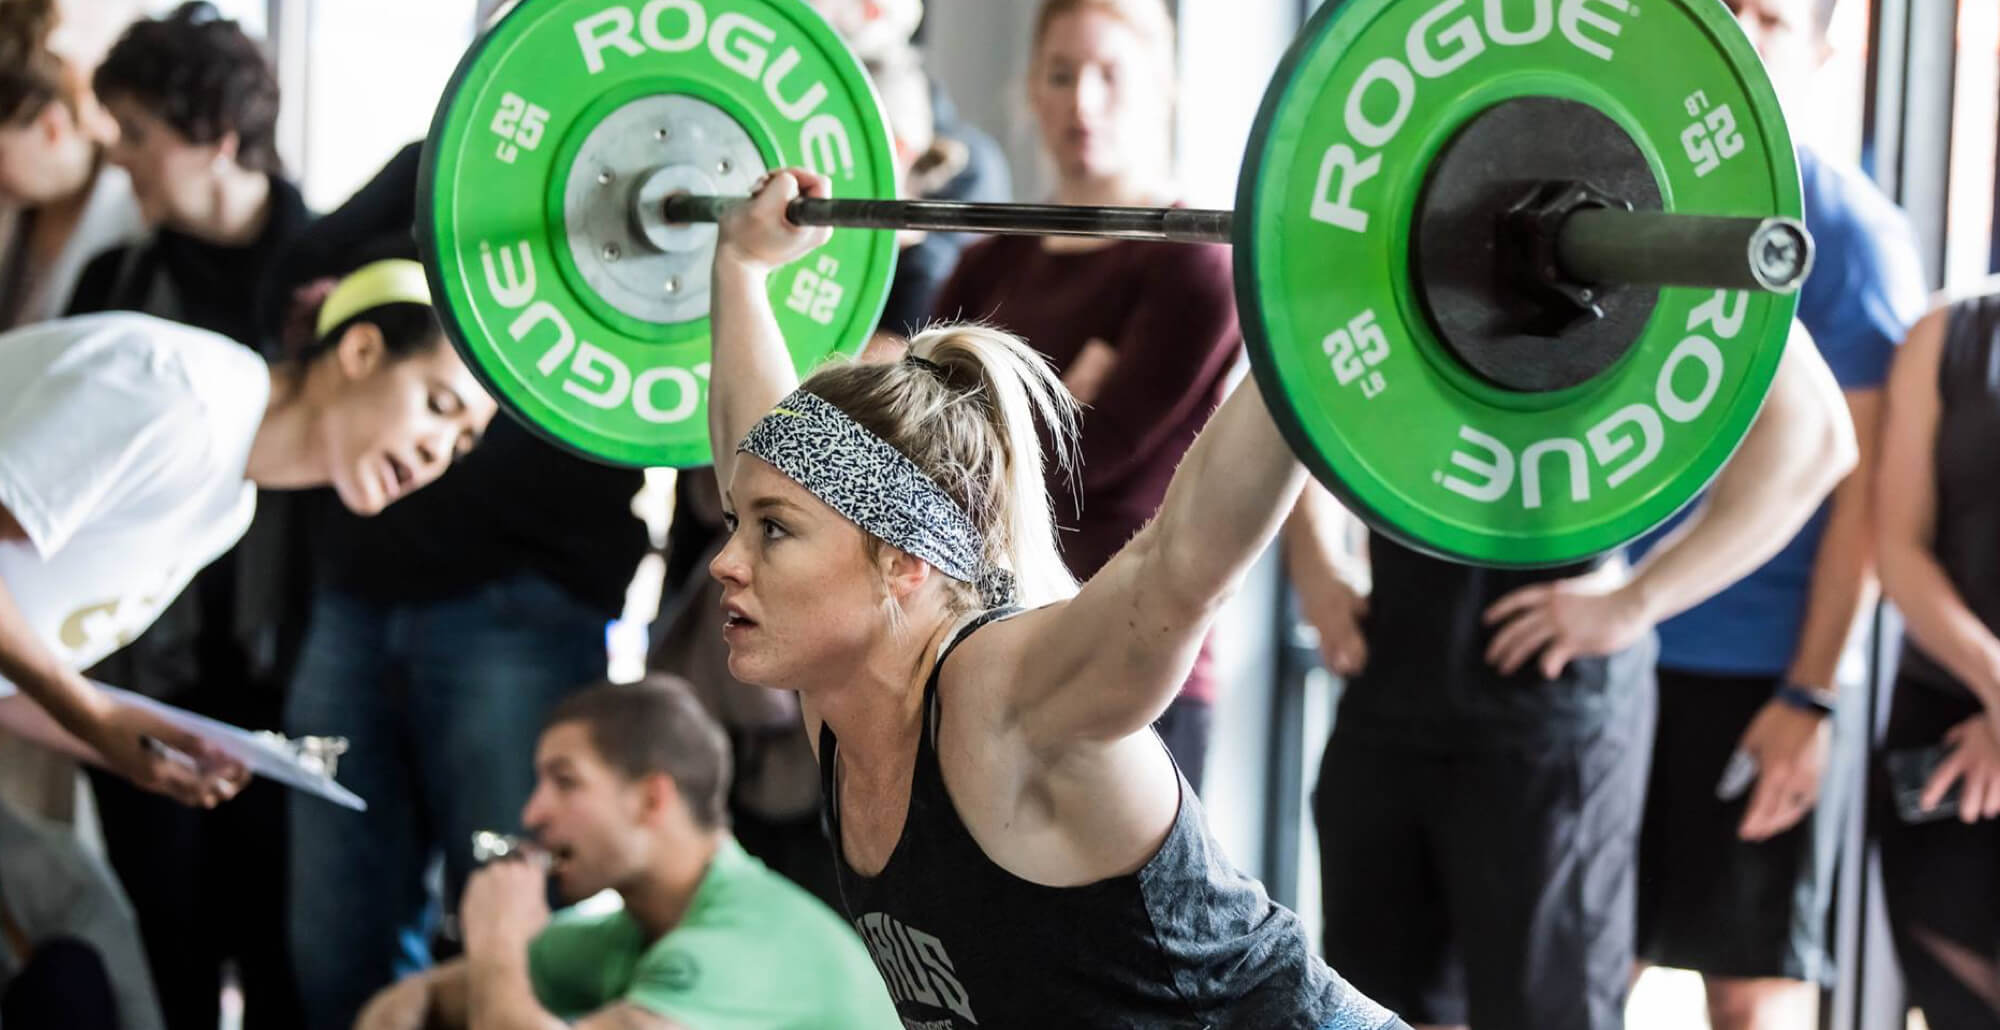 Top crossfit gyms in raleigh